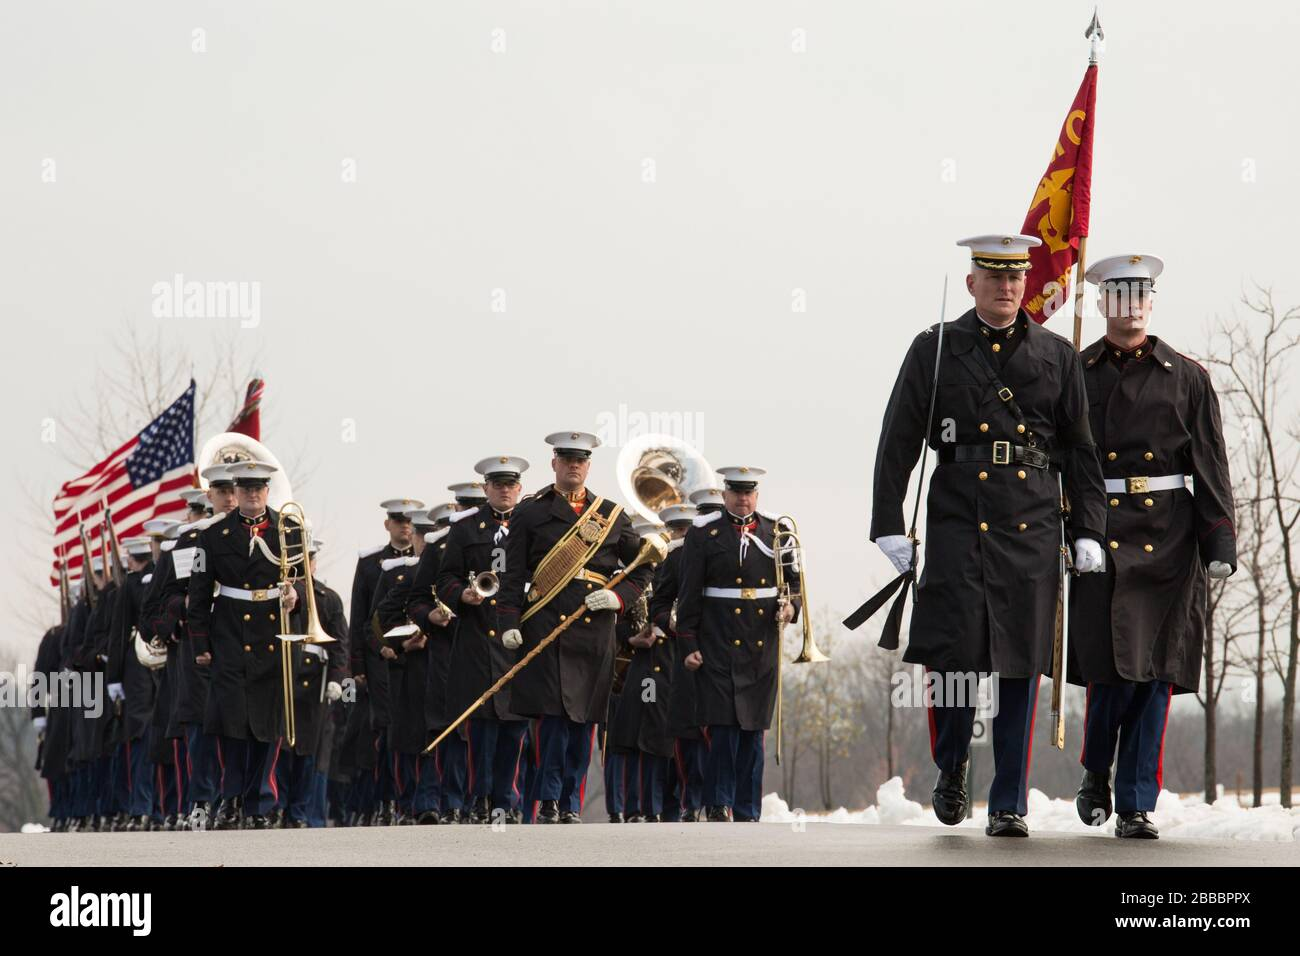 """""""Col. Christian G. Cabaniss, commanding officer of Marine Barracks Washington, D.C., The President's Own U.S. Marine Band and Barracks' ceremonial marchers march toward the gravesite of retired Col. Charles H. Waterhouse and his wife Barbara at Arlington National Cemetery, Feb. 19, 2014. Waterhouse and his wife were laid to rest 69 years to the day after he landed on Iwo Jima during World War II. Waterhouse originally left the Corps in 1946, but accepted a special commission as a major in the reserves in 1972 as the Marine Corps' first and only artist-in-residence. He painted more than 160 wor Stock Photo"""